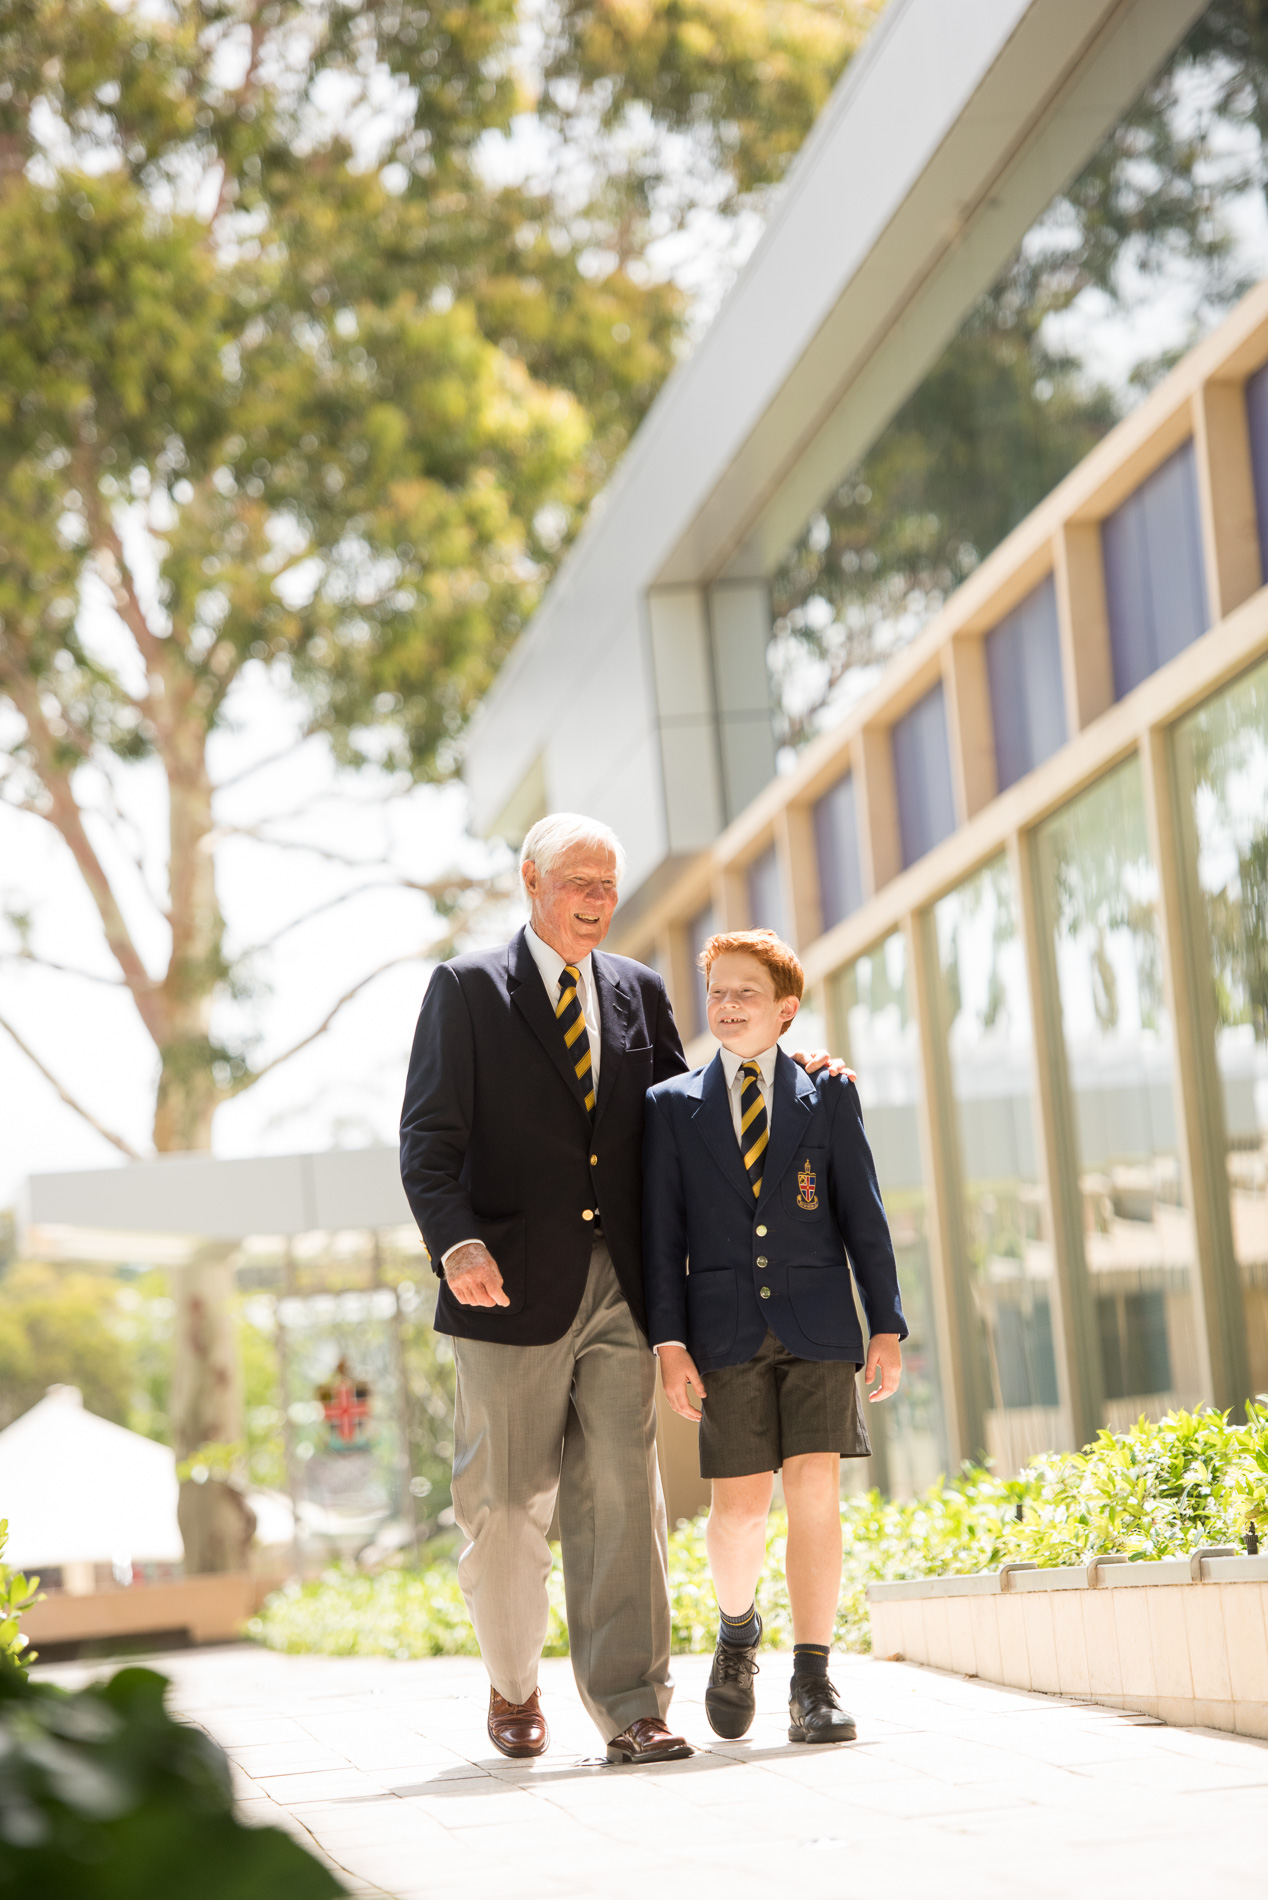 Client: Christ Church Grammar School